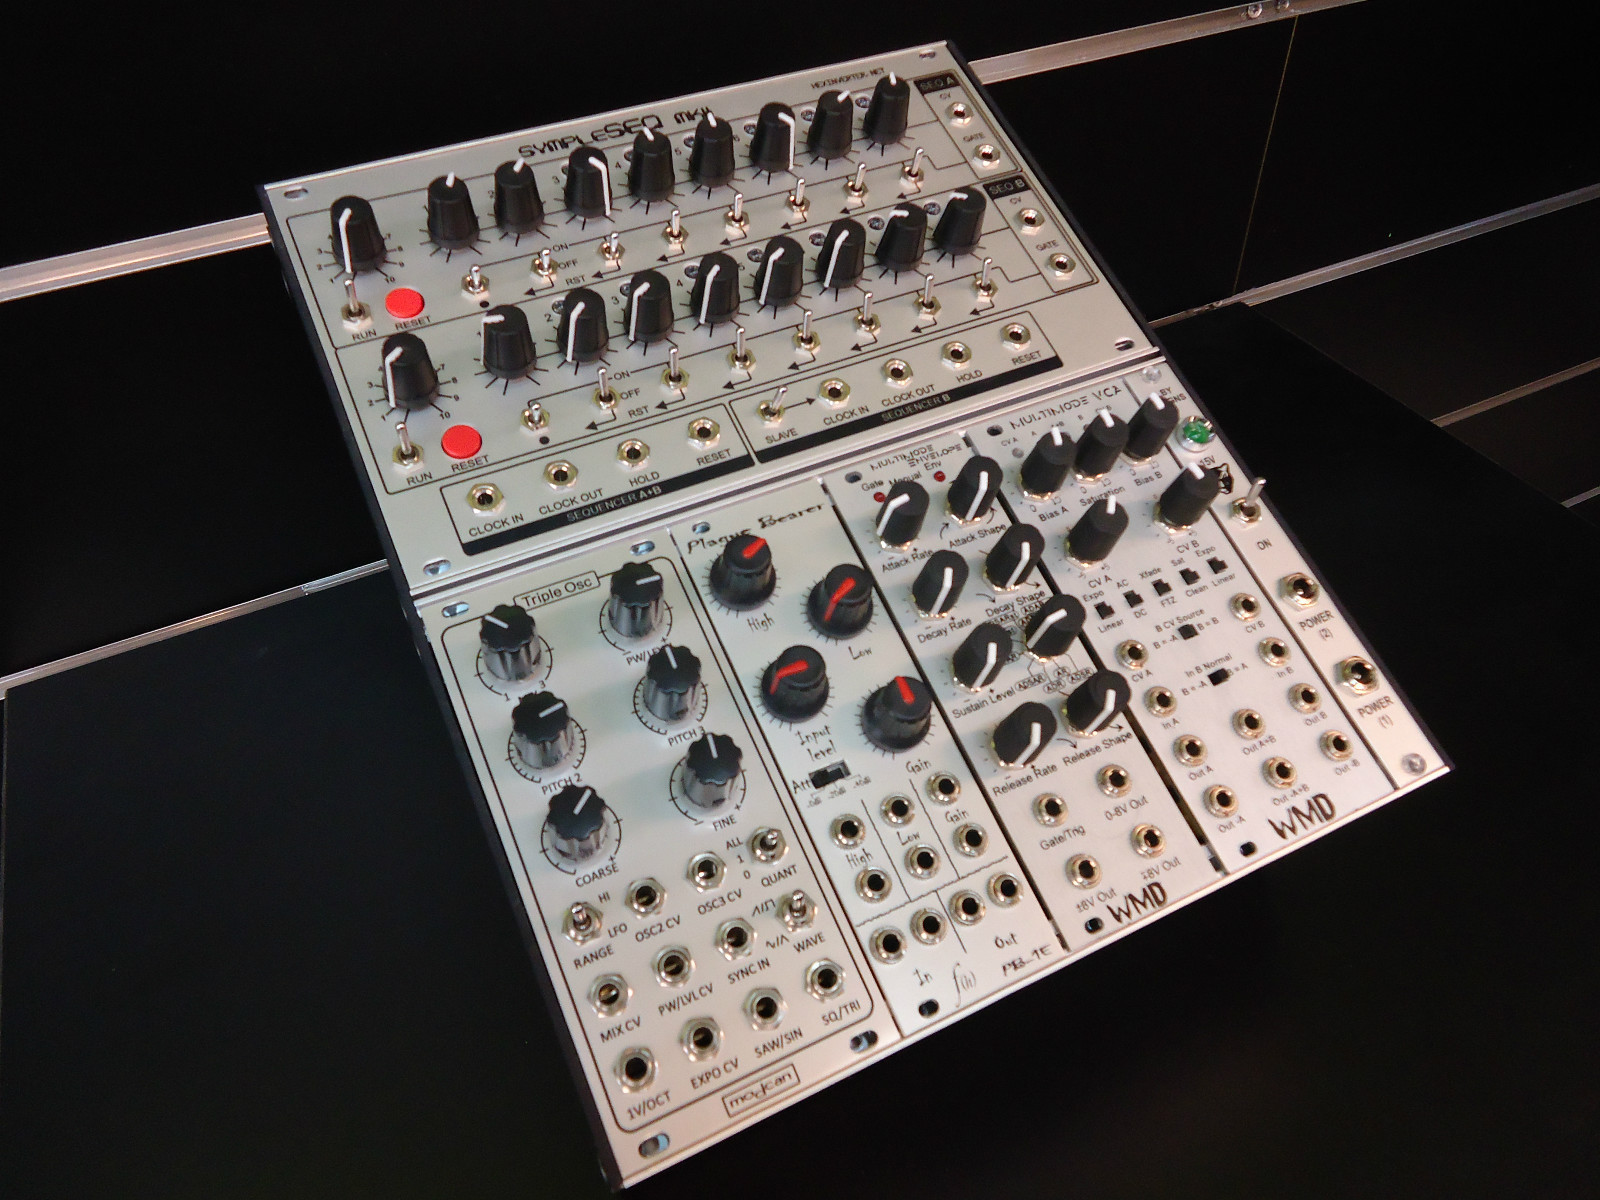 matrixsynth eurorack modular synthesizer sequencer system. Black Bedroom Furniture Sets. Home Design Ideas